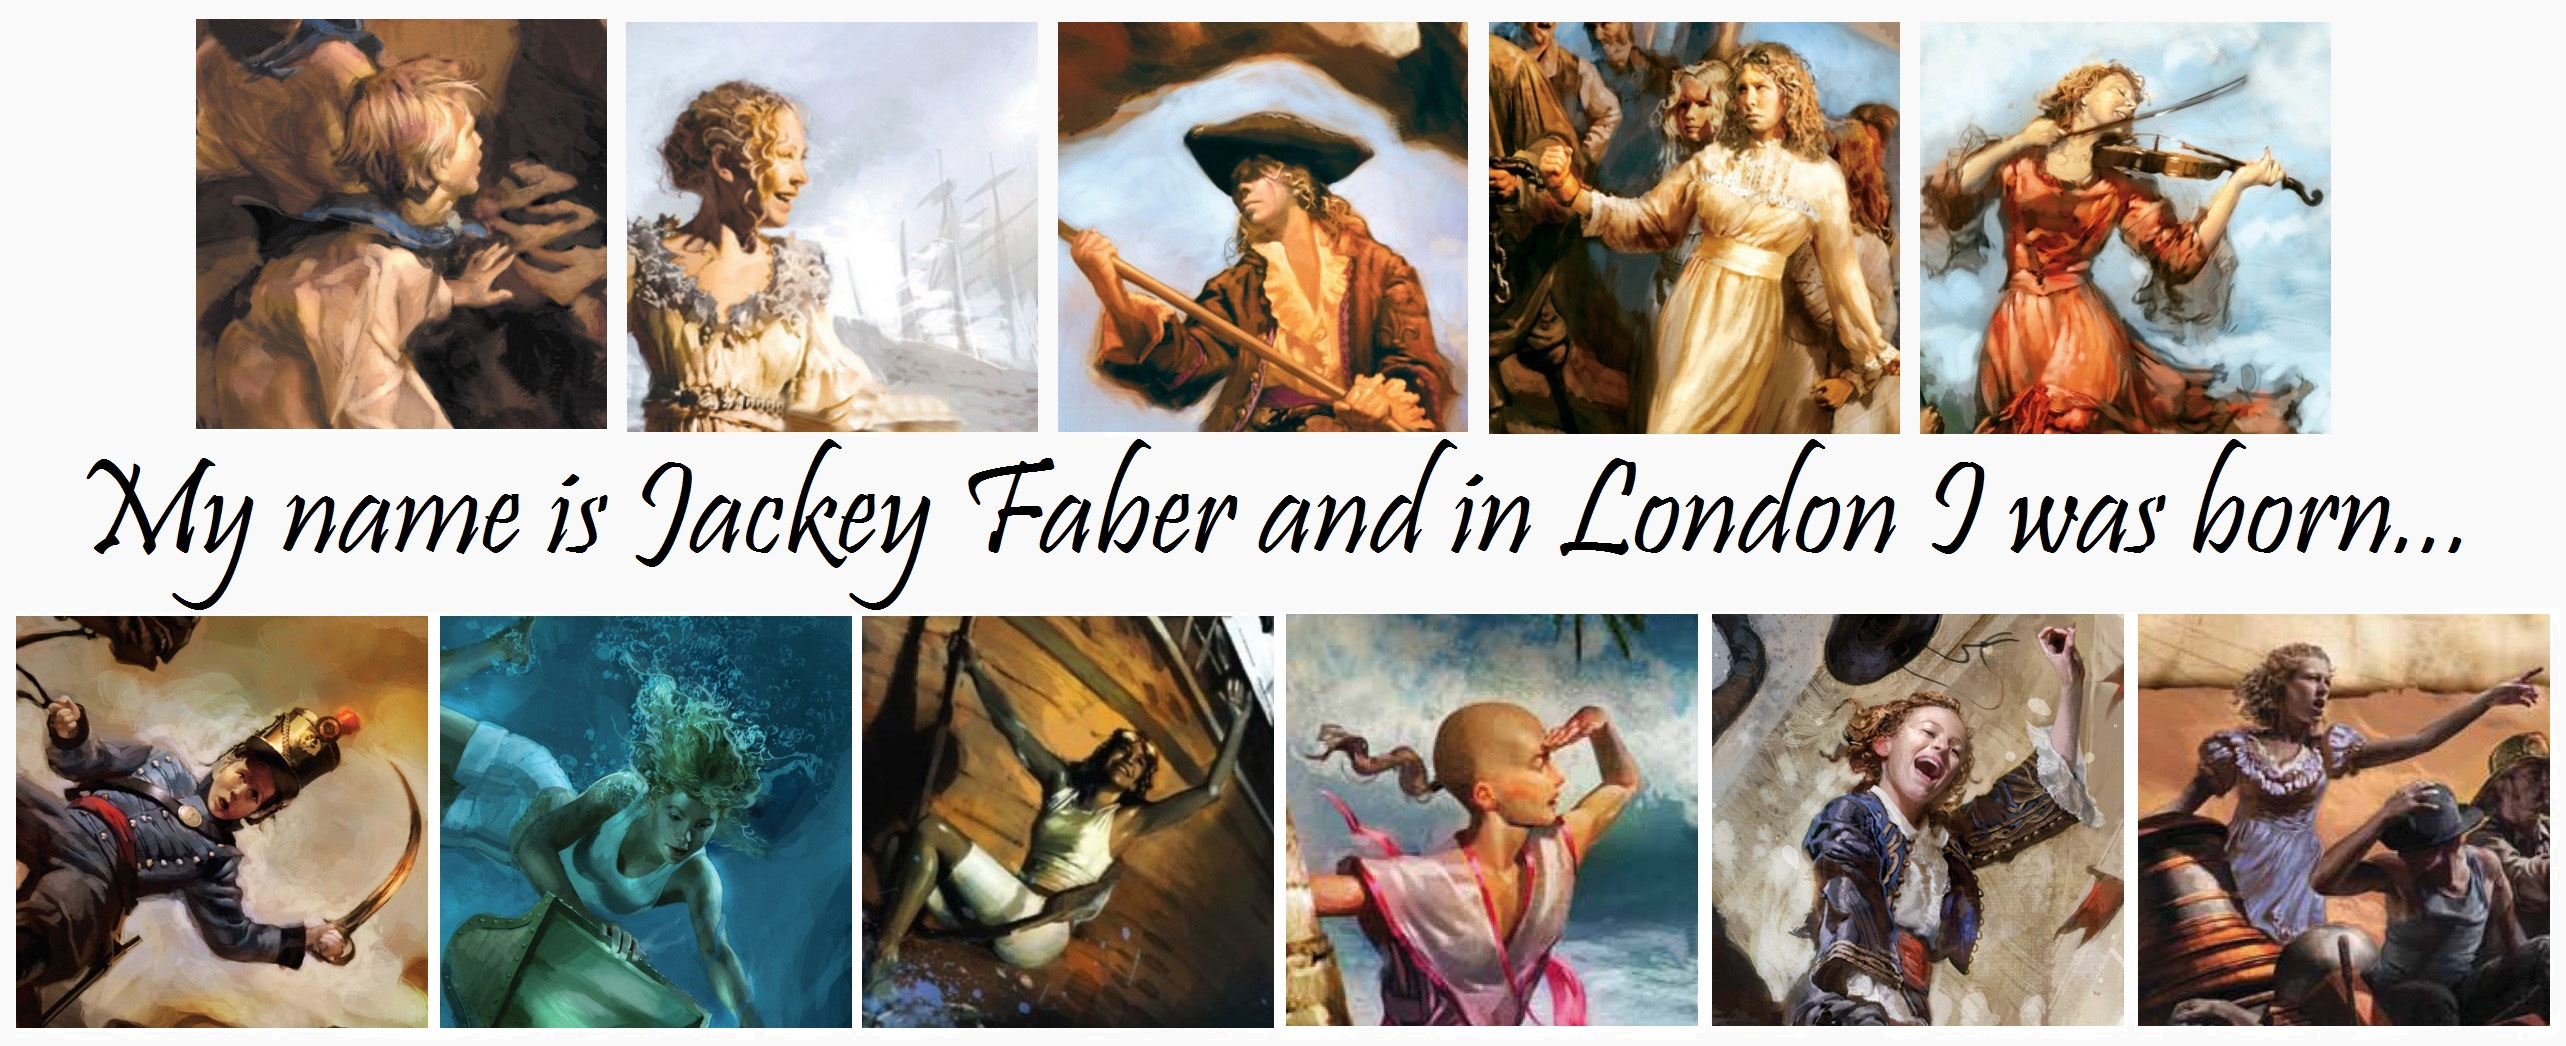 My Name is Jacky Faber and in London I was Born.